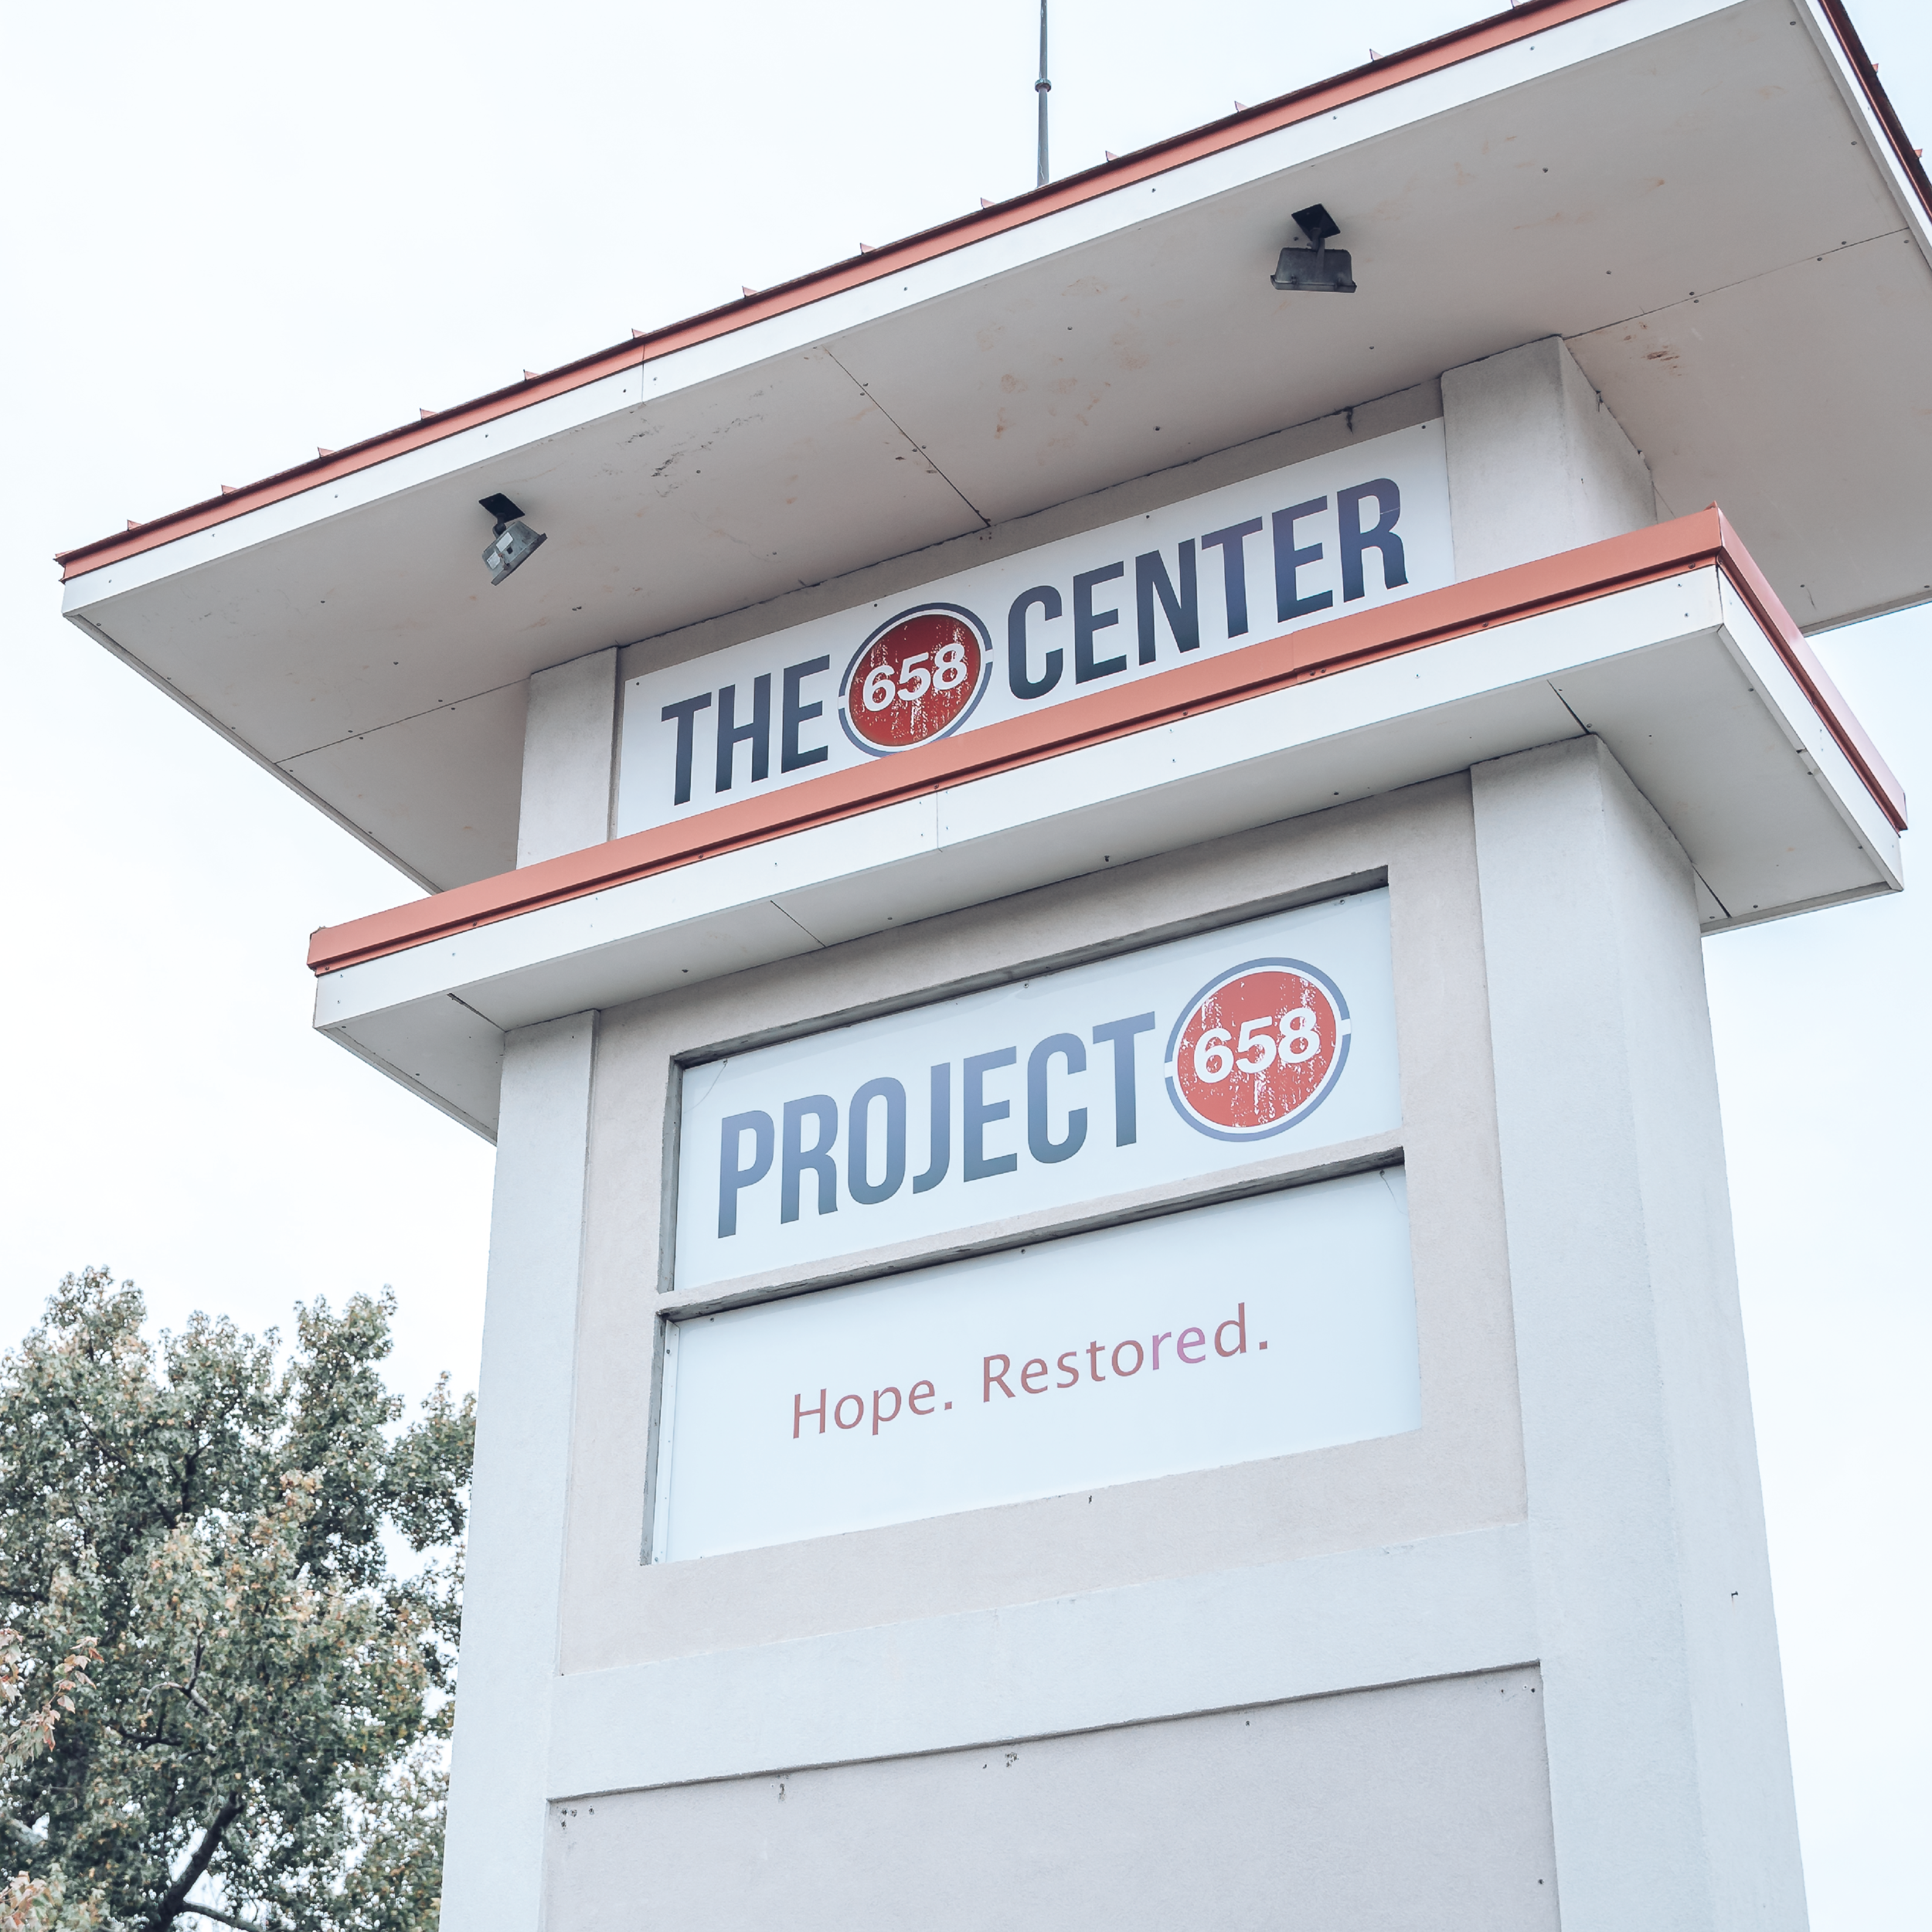 PROJECT 658 - What the former community knew as an old Kate's skating rink, Project 658 looked to adapt it to a center that would help the marginalized community in Charlotte, NC. They reached out to Ecclesia to help make this dream happen